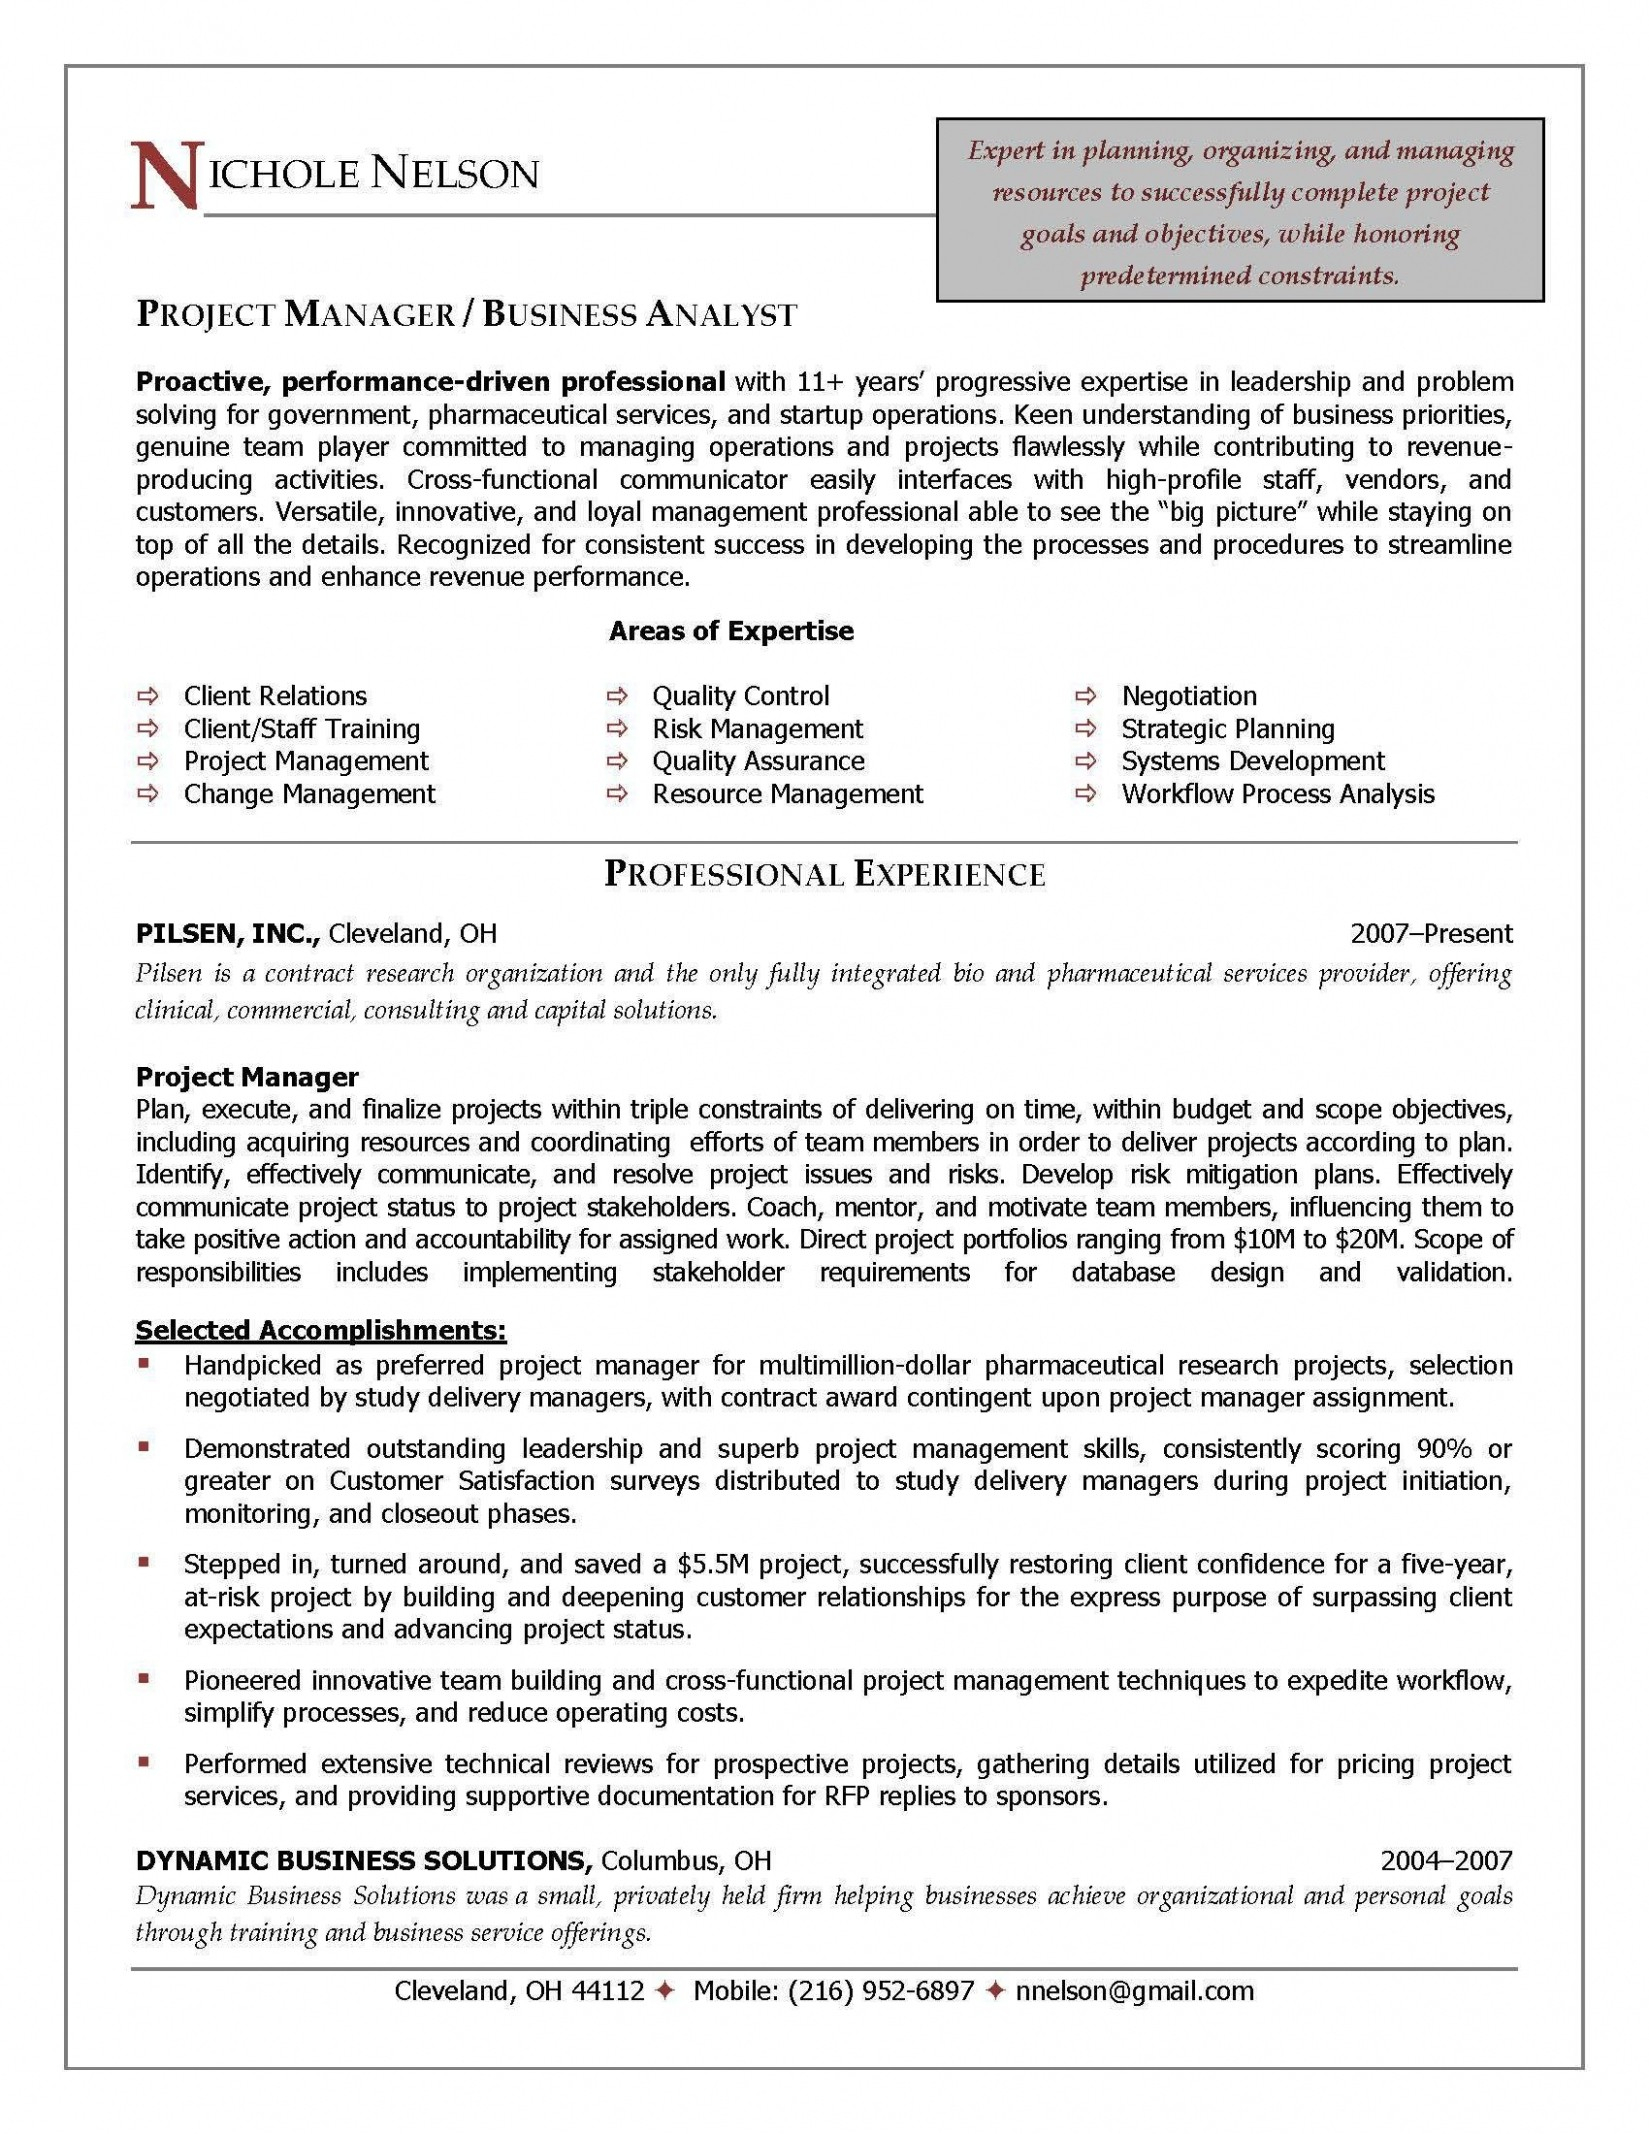 quality control resume example-Quality Control Resume Unique Awesome Examples Resumes Ecologist Resume 0d Technical Resume Quality Control Resume 16-m